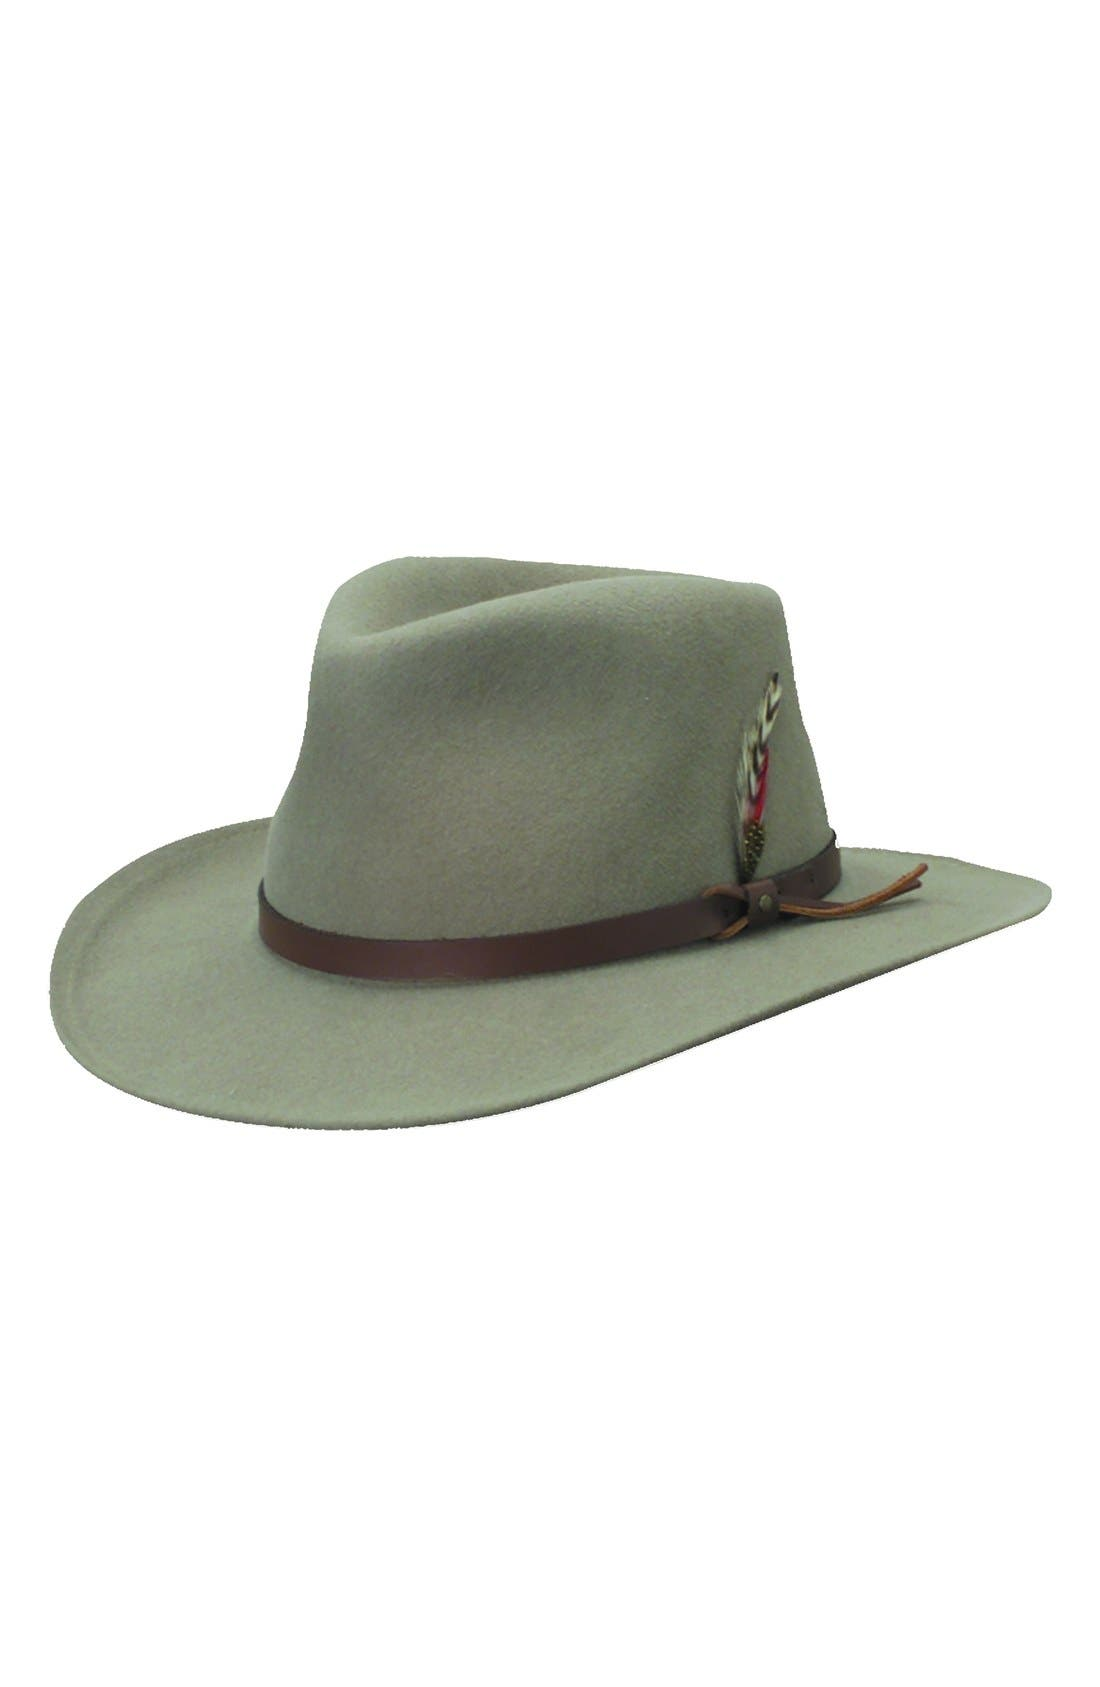 'Classico' Crushable Felt Outback Hat,                             Main thumbnail 1, color,                             PUTTY GREY/ BROWN